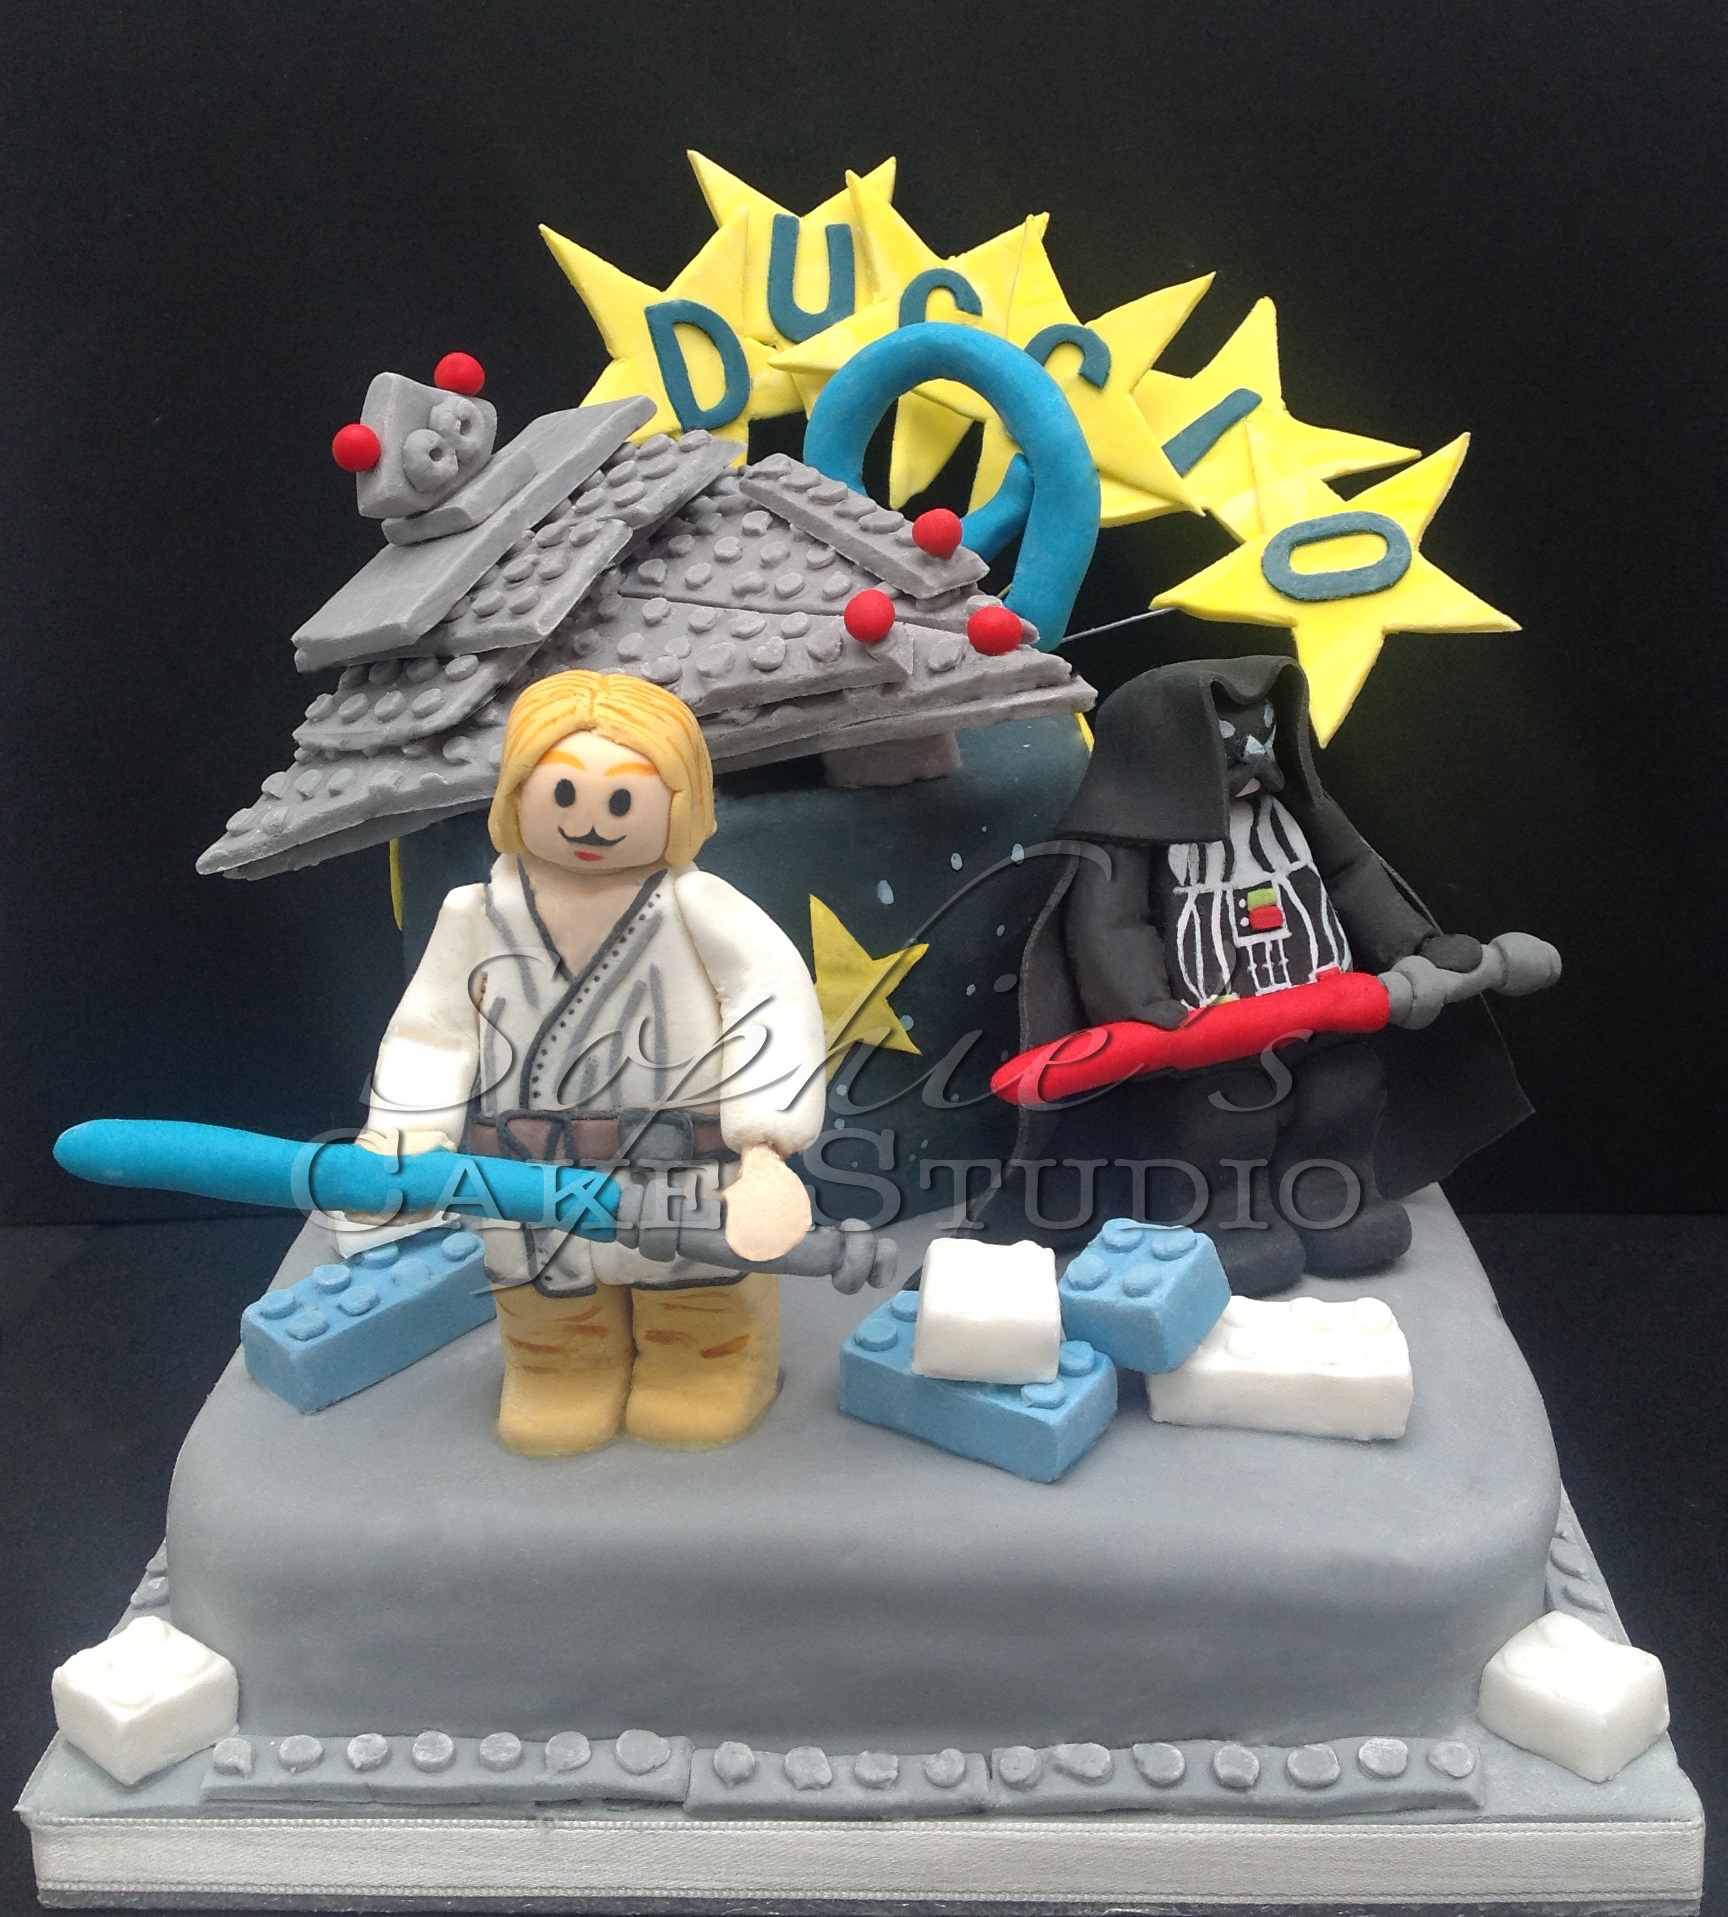 star wars lego watermarked